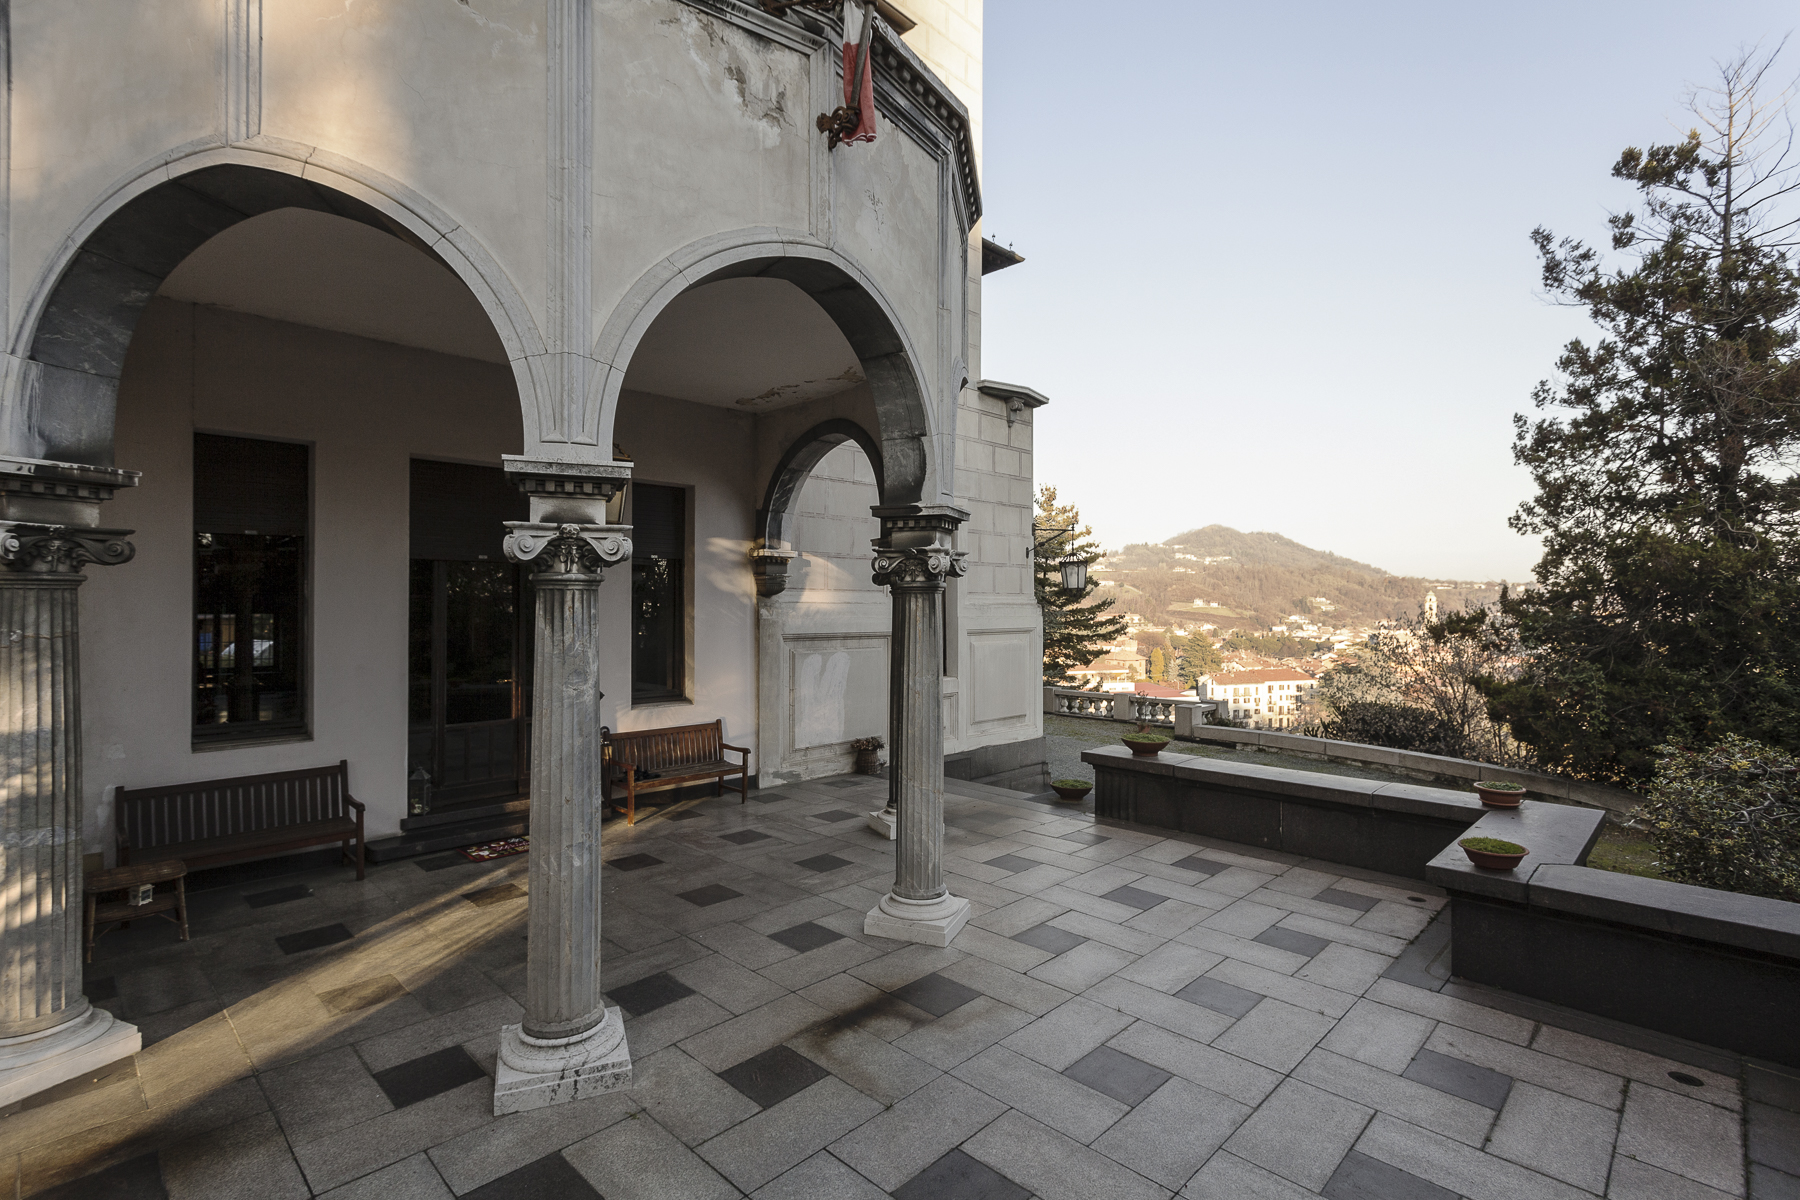 Additional photo for property listing at Beautiful Liberty Style Villa Via Galileo Galilei, 45 Biella, Biella 15900 Italien